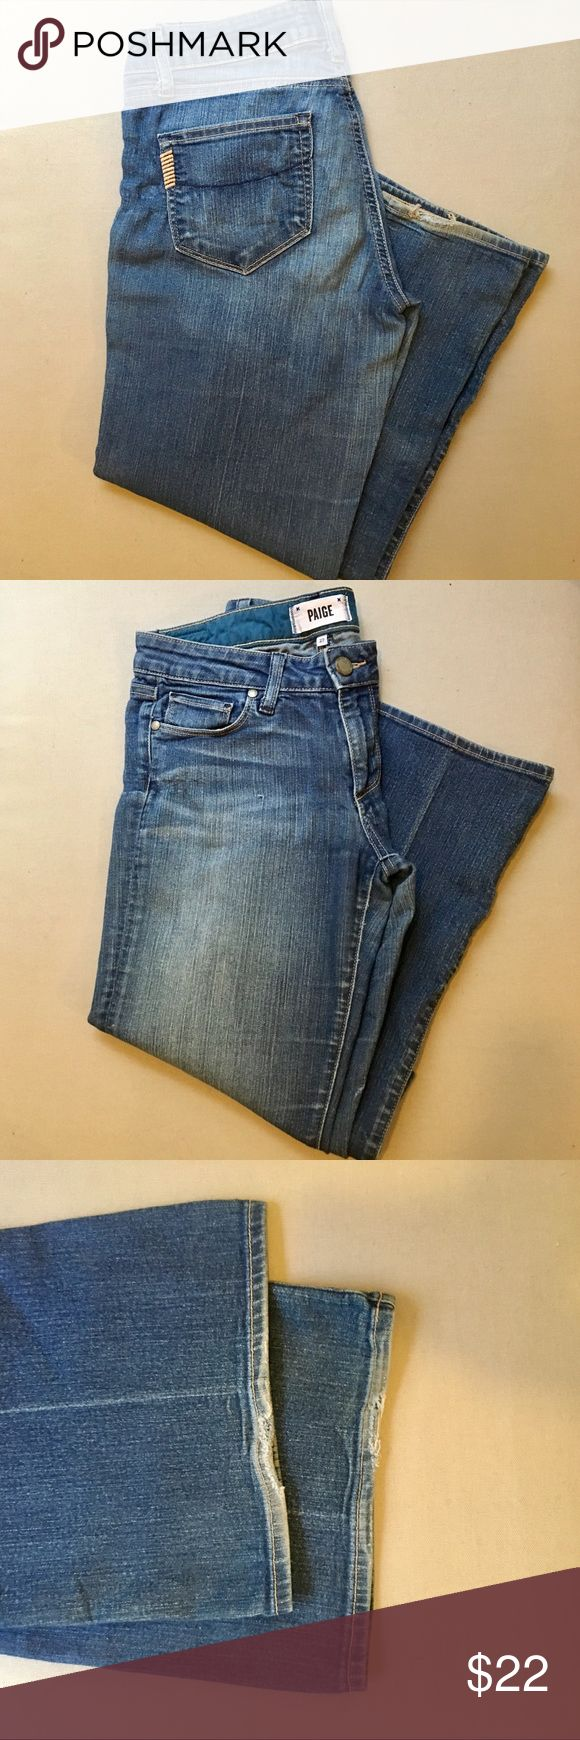 """Paige Jeans Boot Cut Paige Jeans, boot cut (Skyline Boot). Minor wearing and fraying at the bottom.   Brand: Paige Jeans Size: 27 Waist: 15"""" (flat) Length: 42"""" Inseam: 34"""" PAIGE Jeans Boot Cut"""